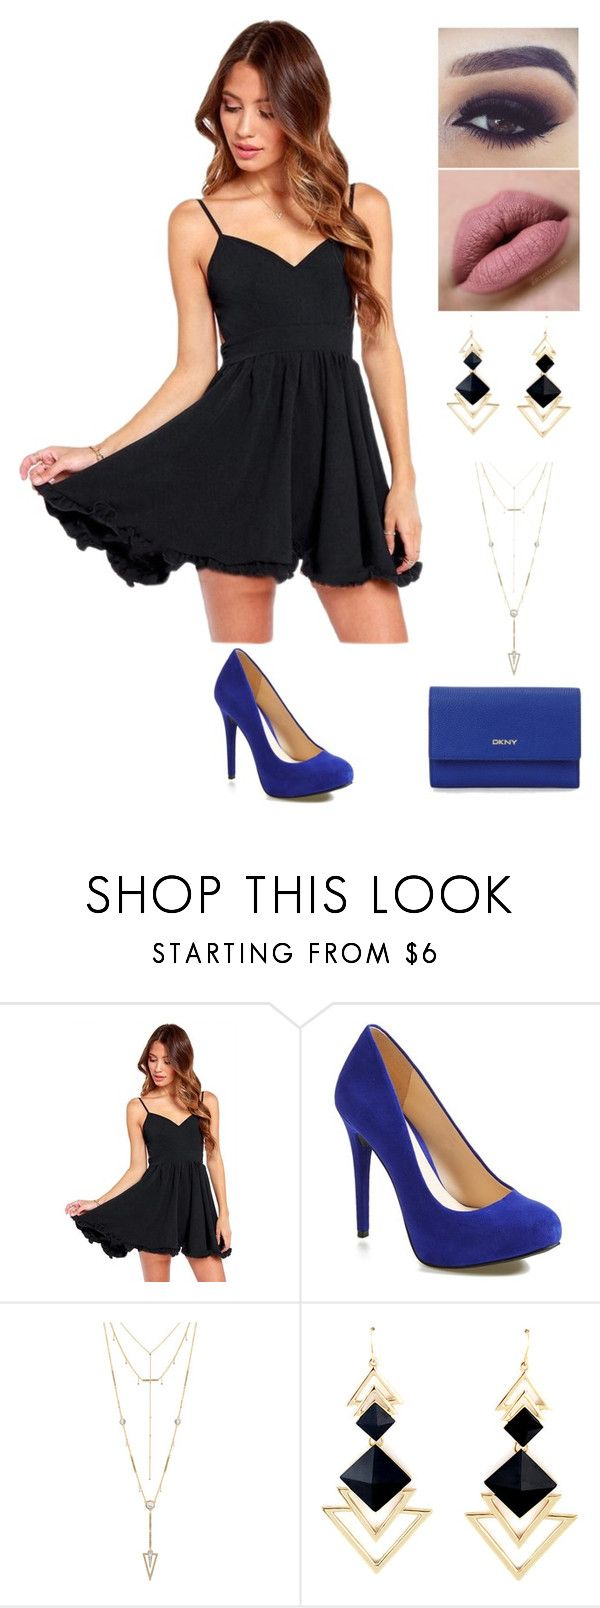 """""""Party"""" by rhay-q ❤ liked on Polyvore featuring WithChic, Jessica Simpson, House of Harlow 1960 and DKNY"""